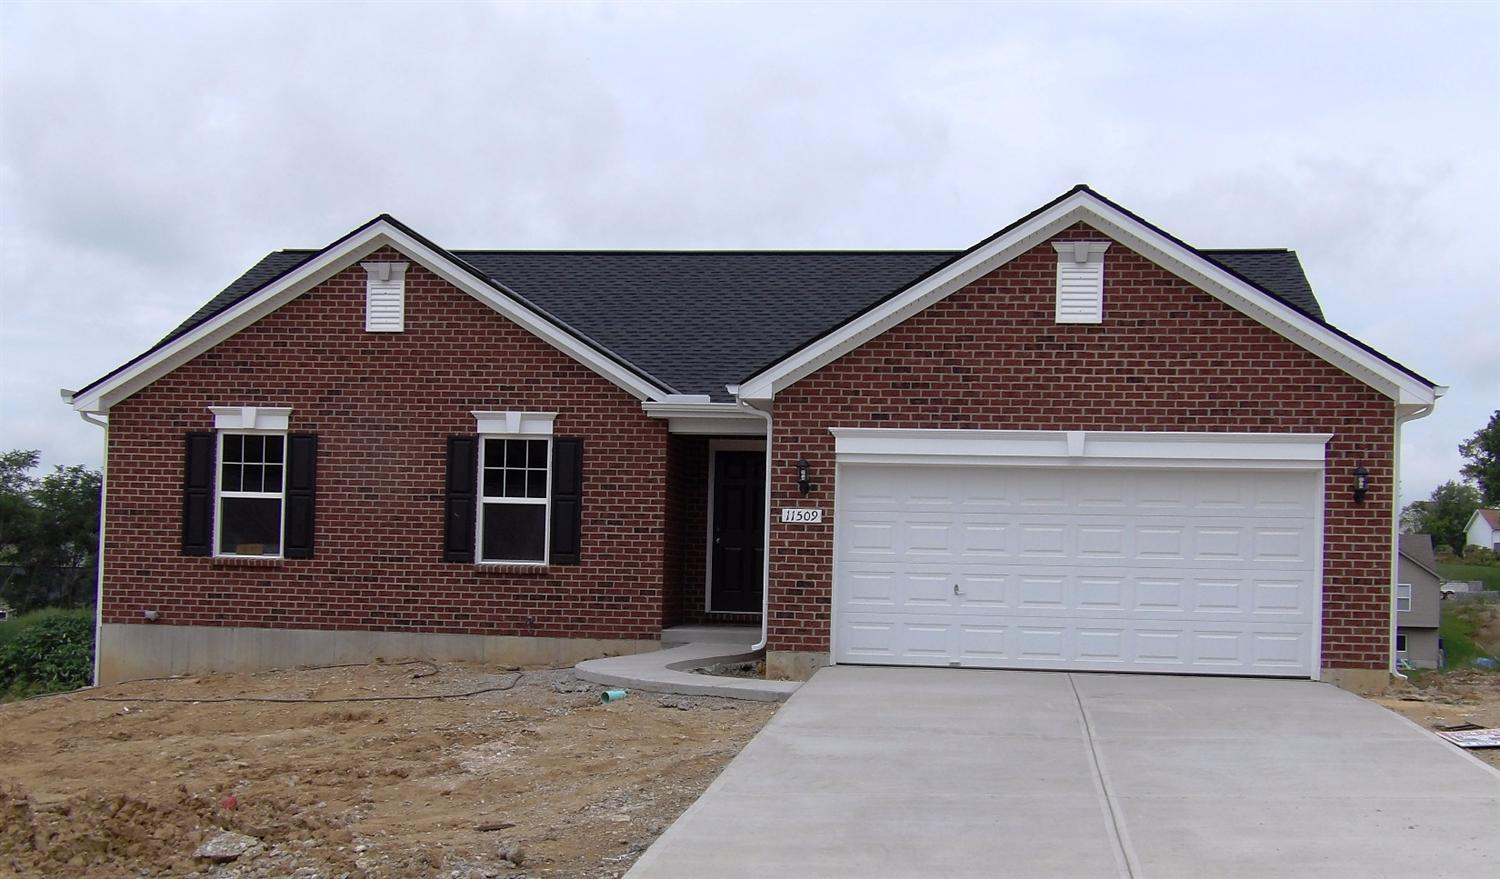 Photo 1 for 11509 Ridgetop Dr, 4RT Walton, KY 41094